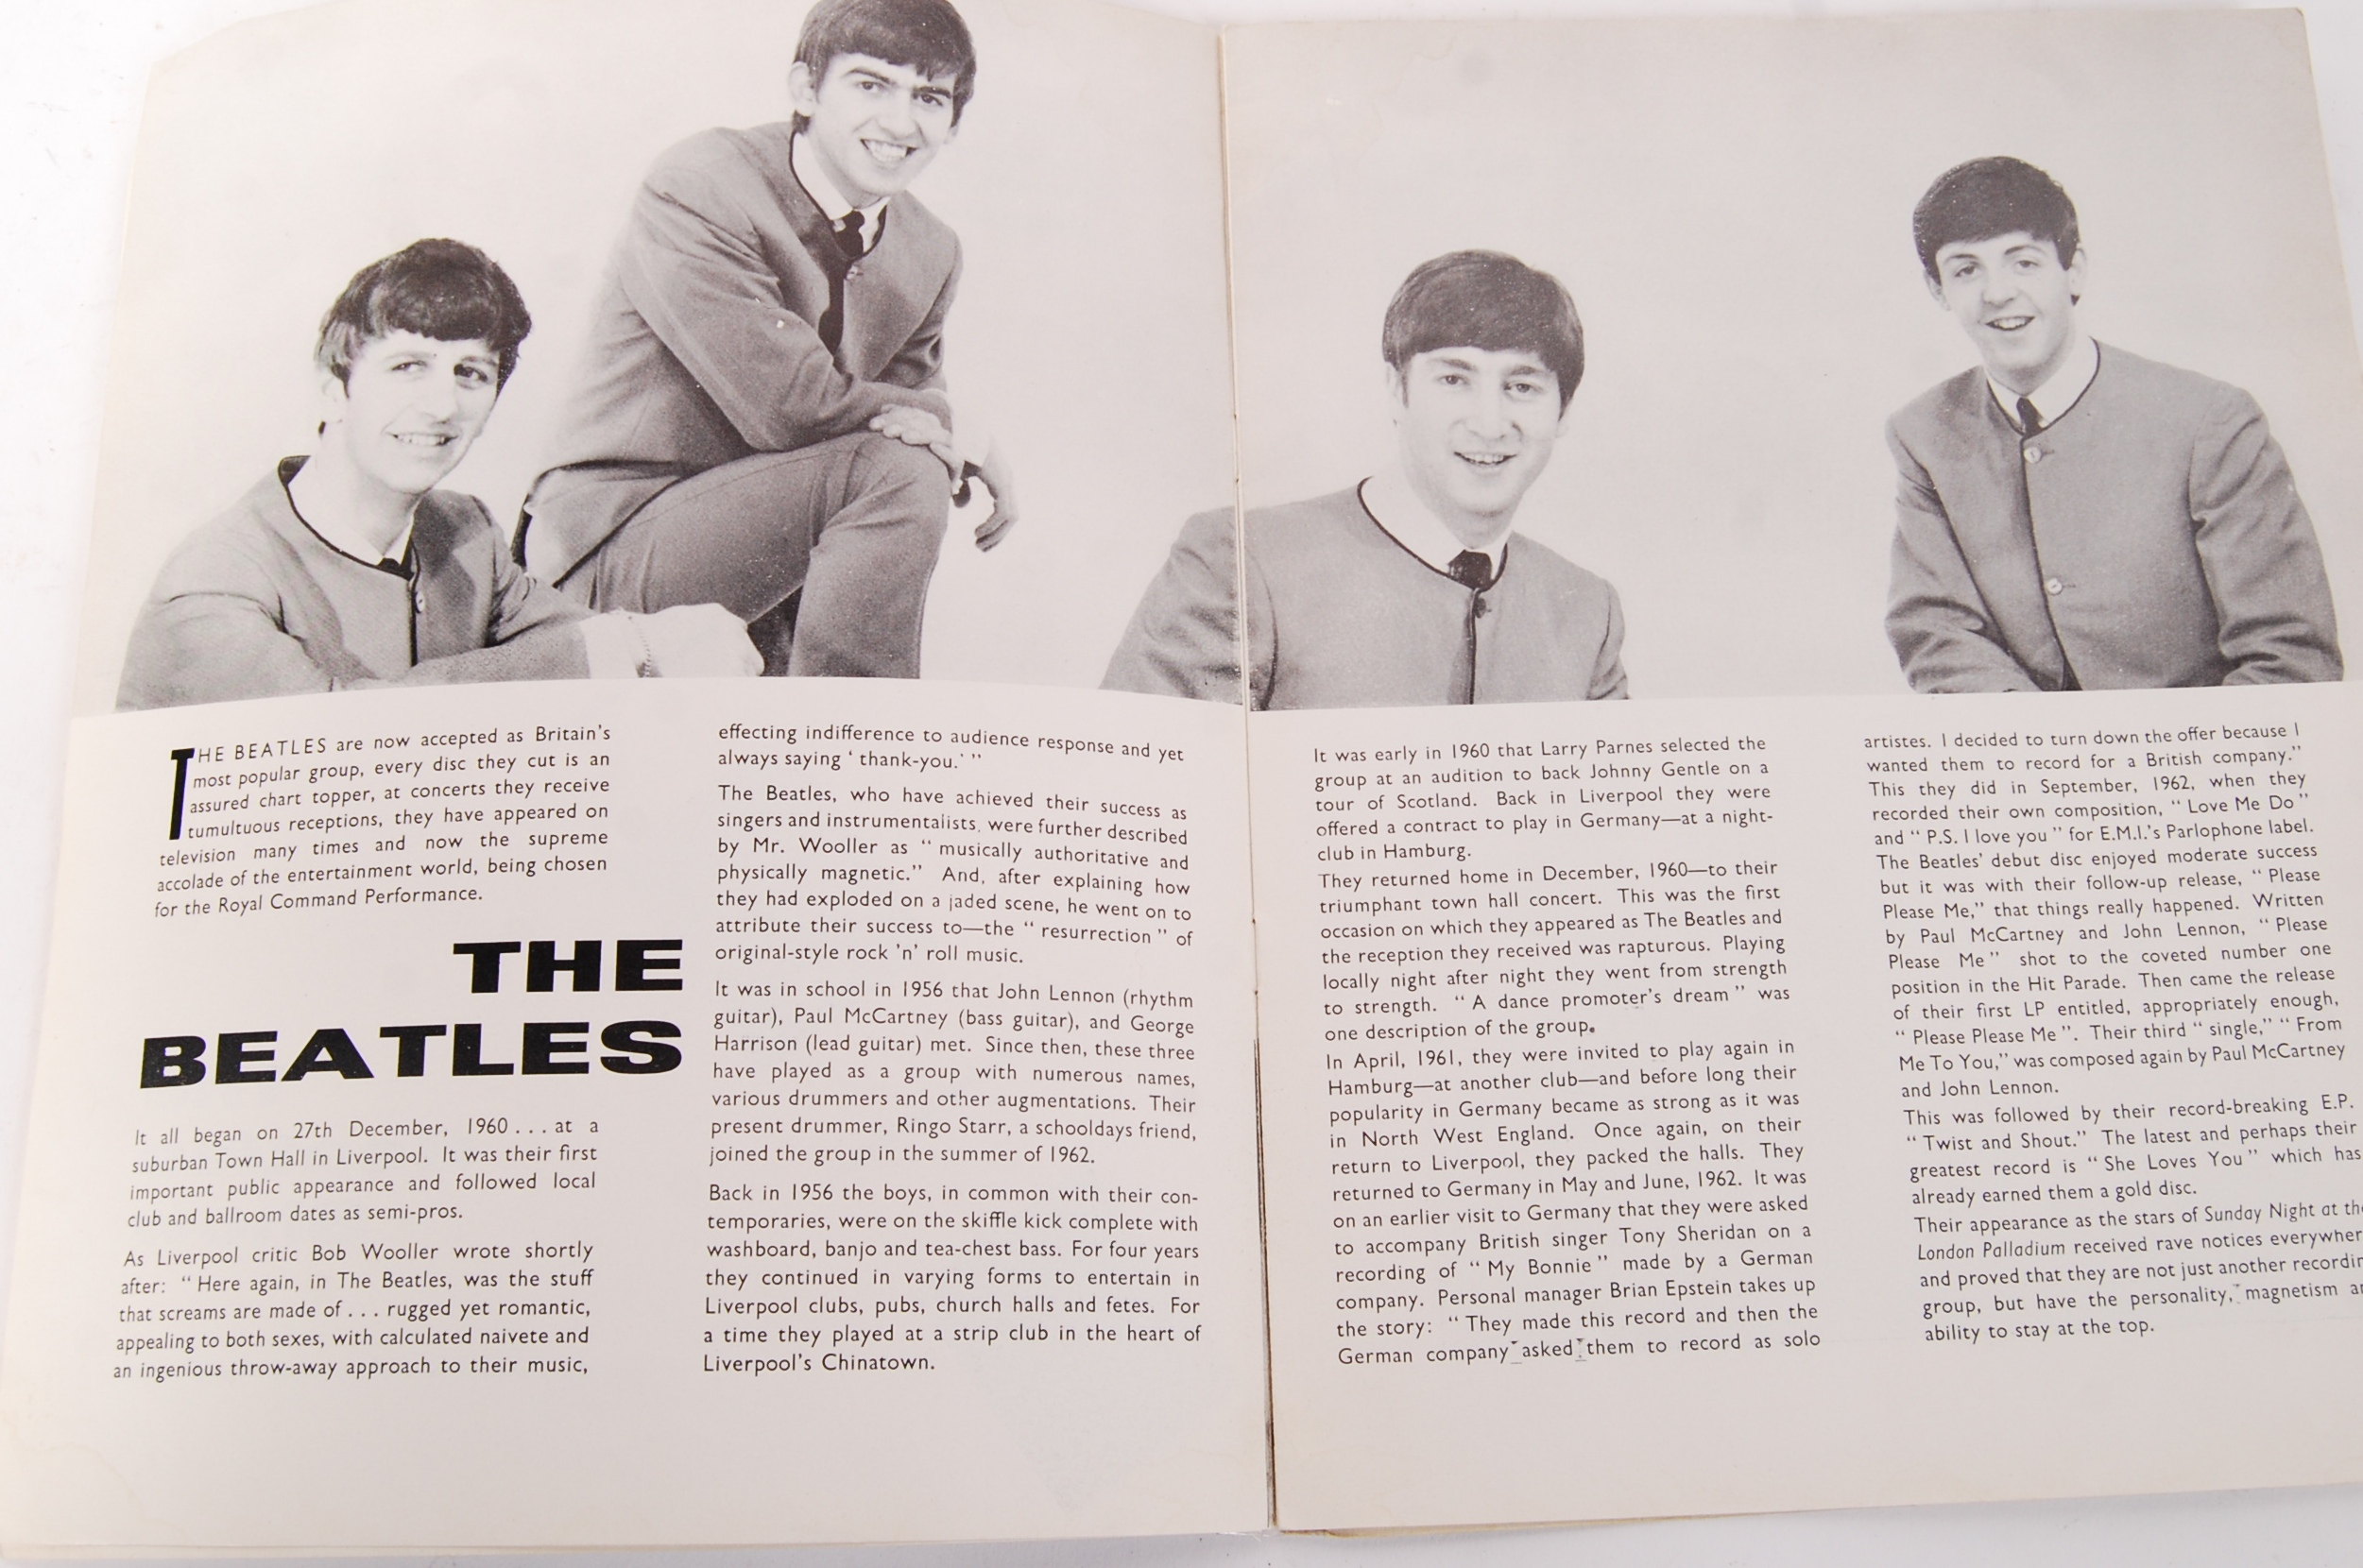 INCREDIBLY RARE PERSONAL BEATLES AUTOGRAPH COLLECT - Image 12 of 12